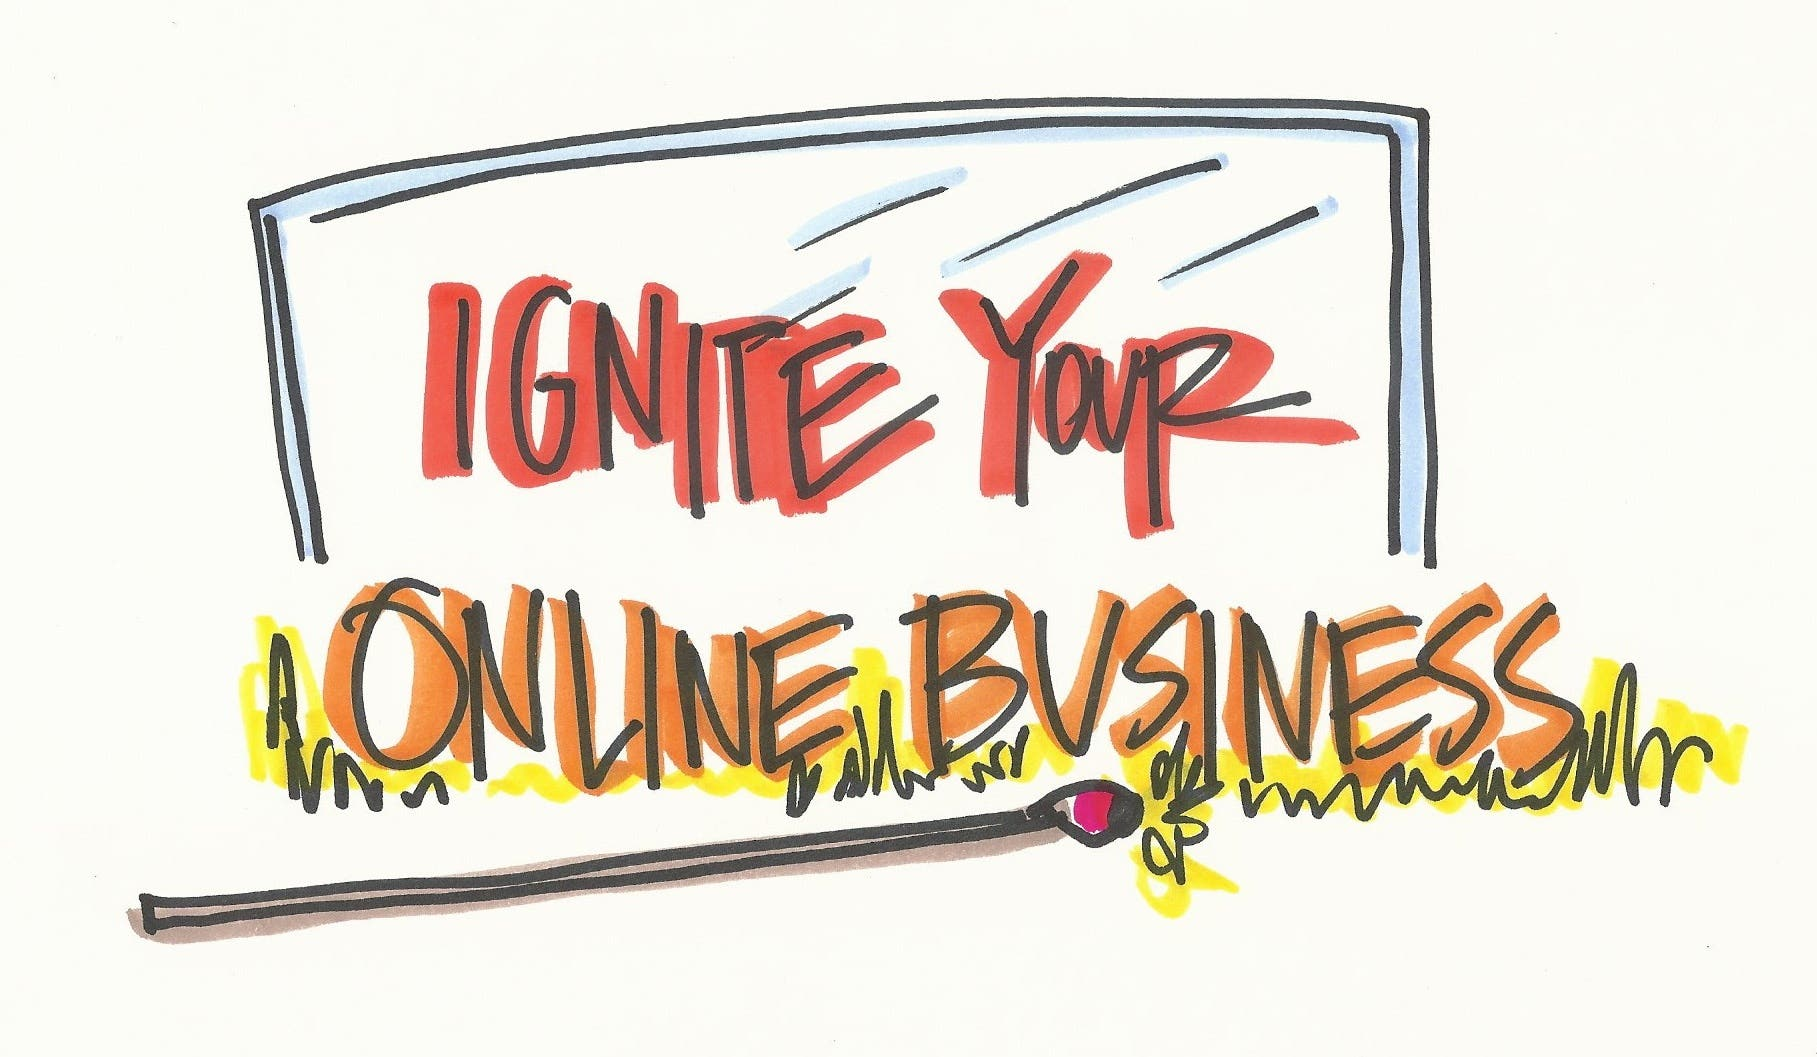 Ignite Your Online Business